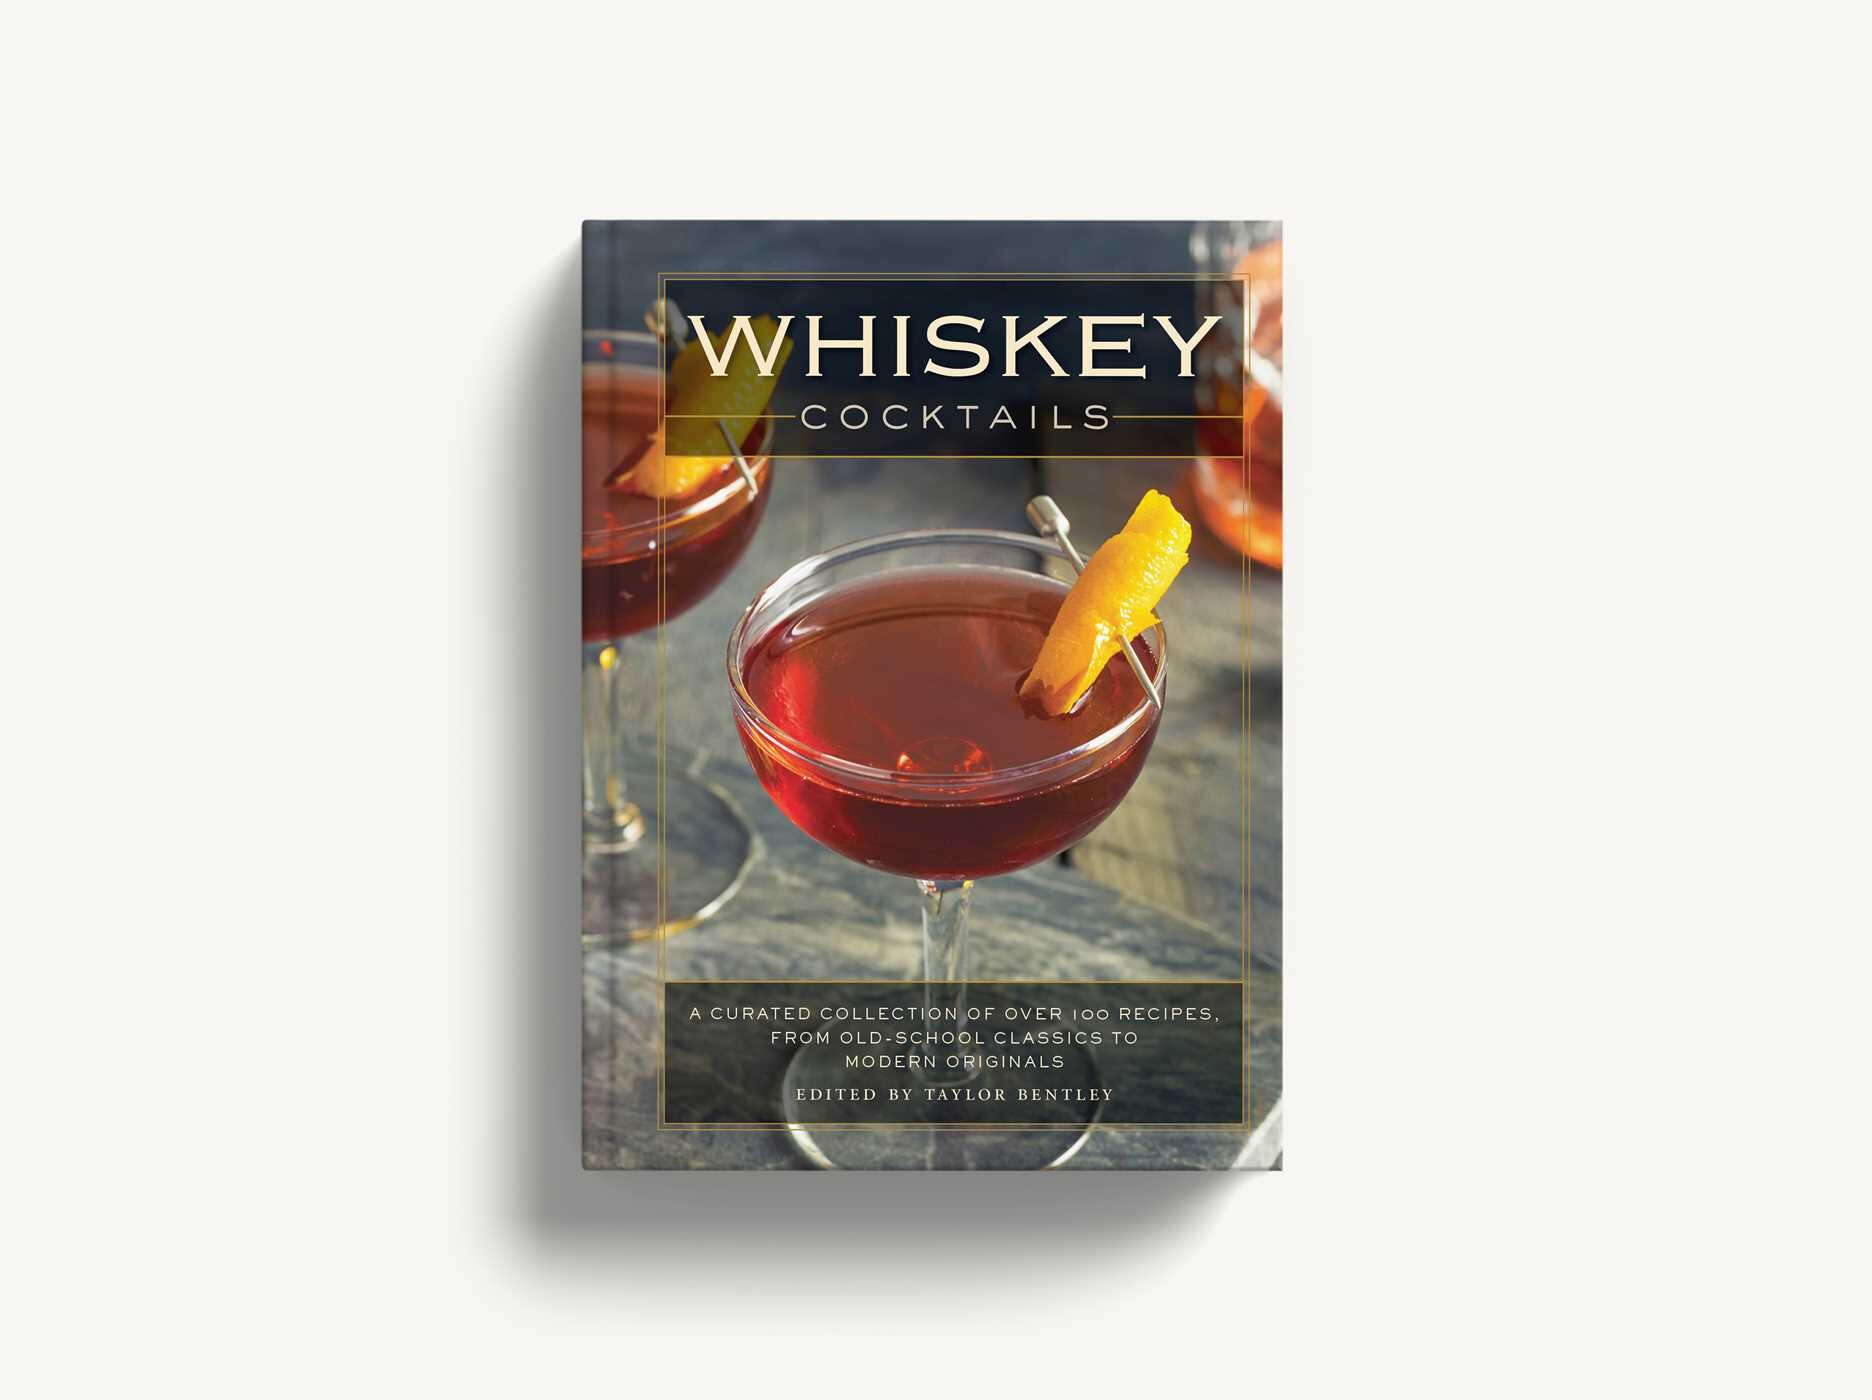 Whiskey cocktails 9781604337914.in01